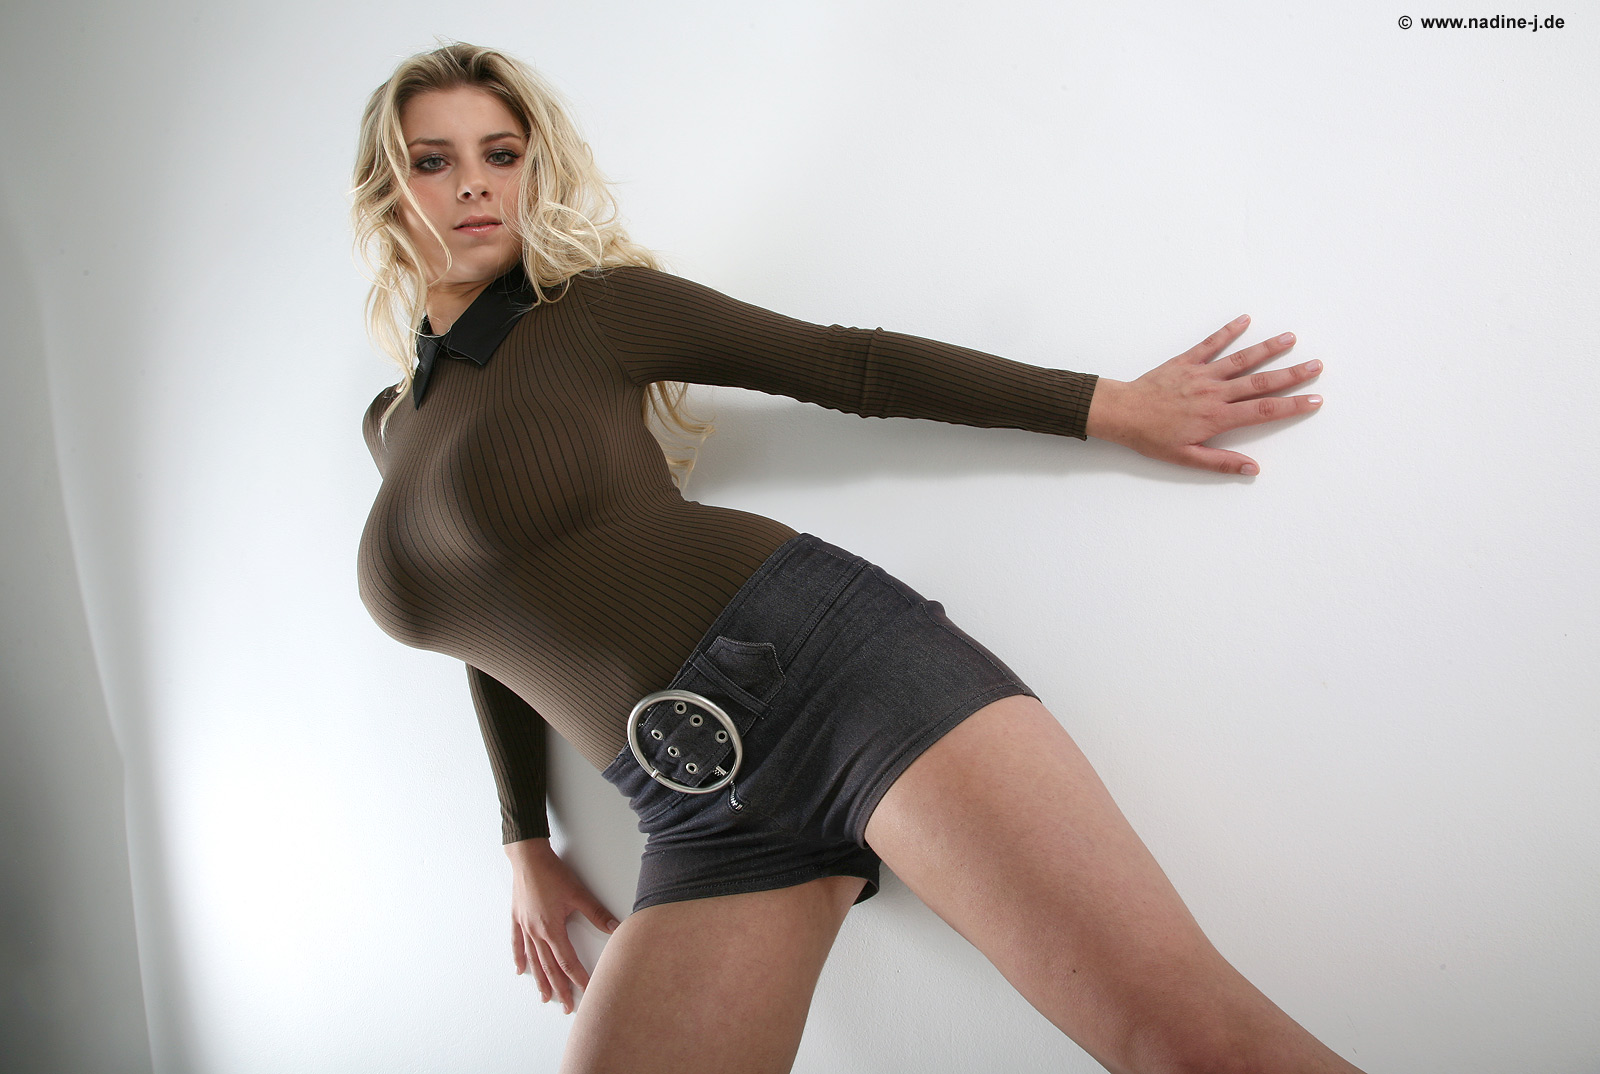 Leanna hart goes for oral sex 7